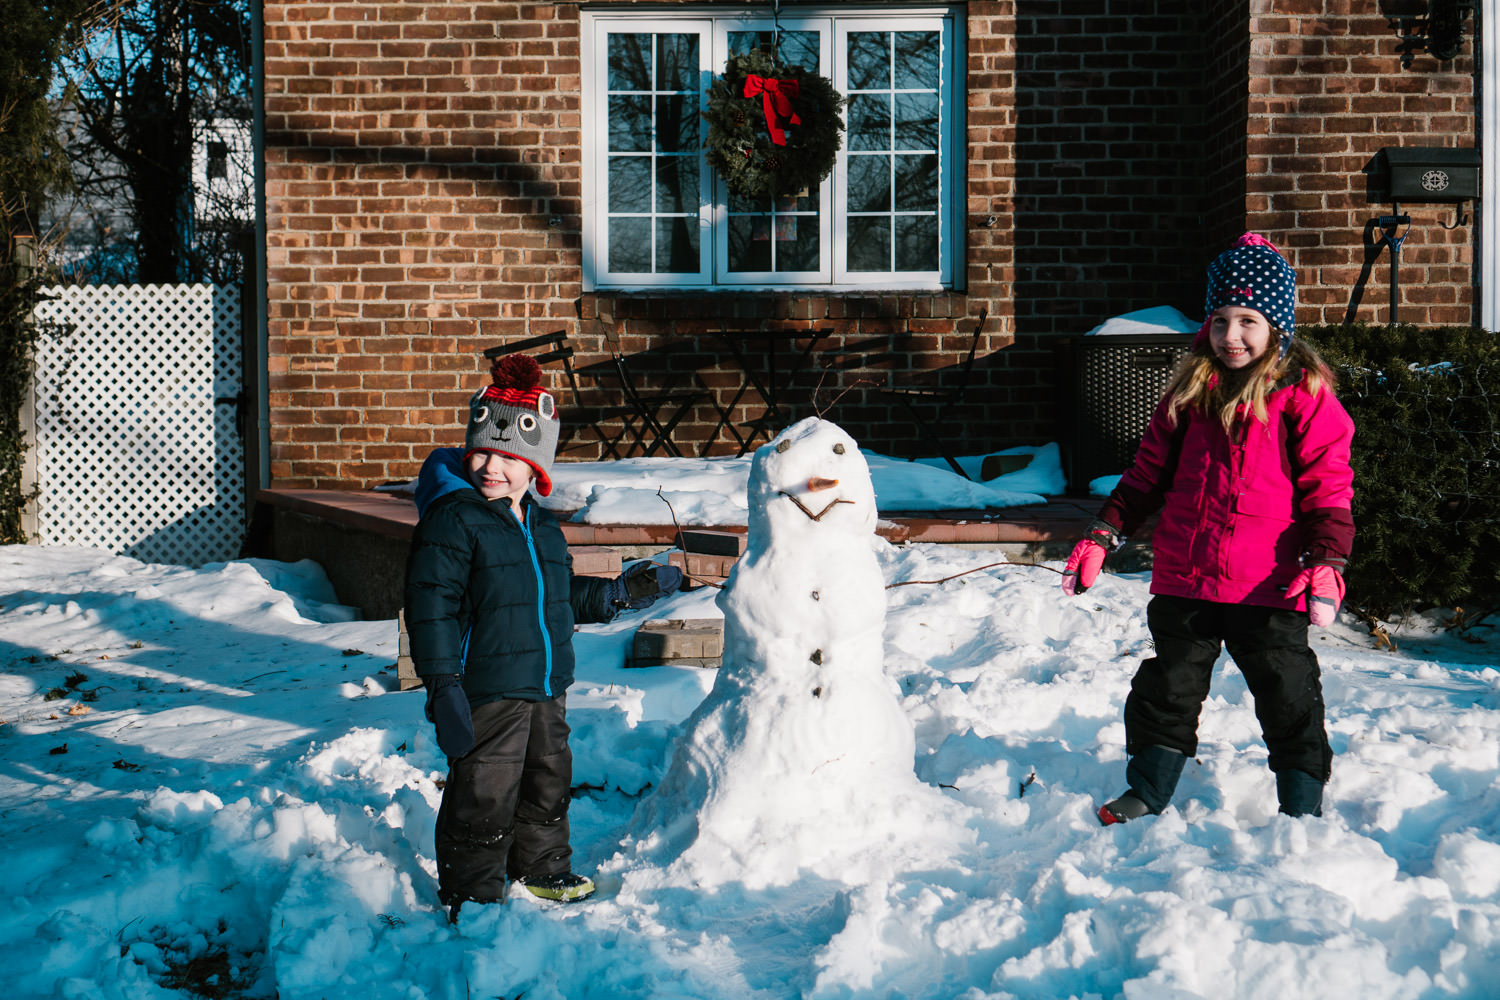 Two children pose next to a snowman they built.